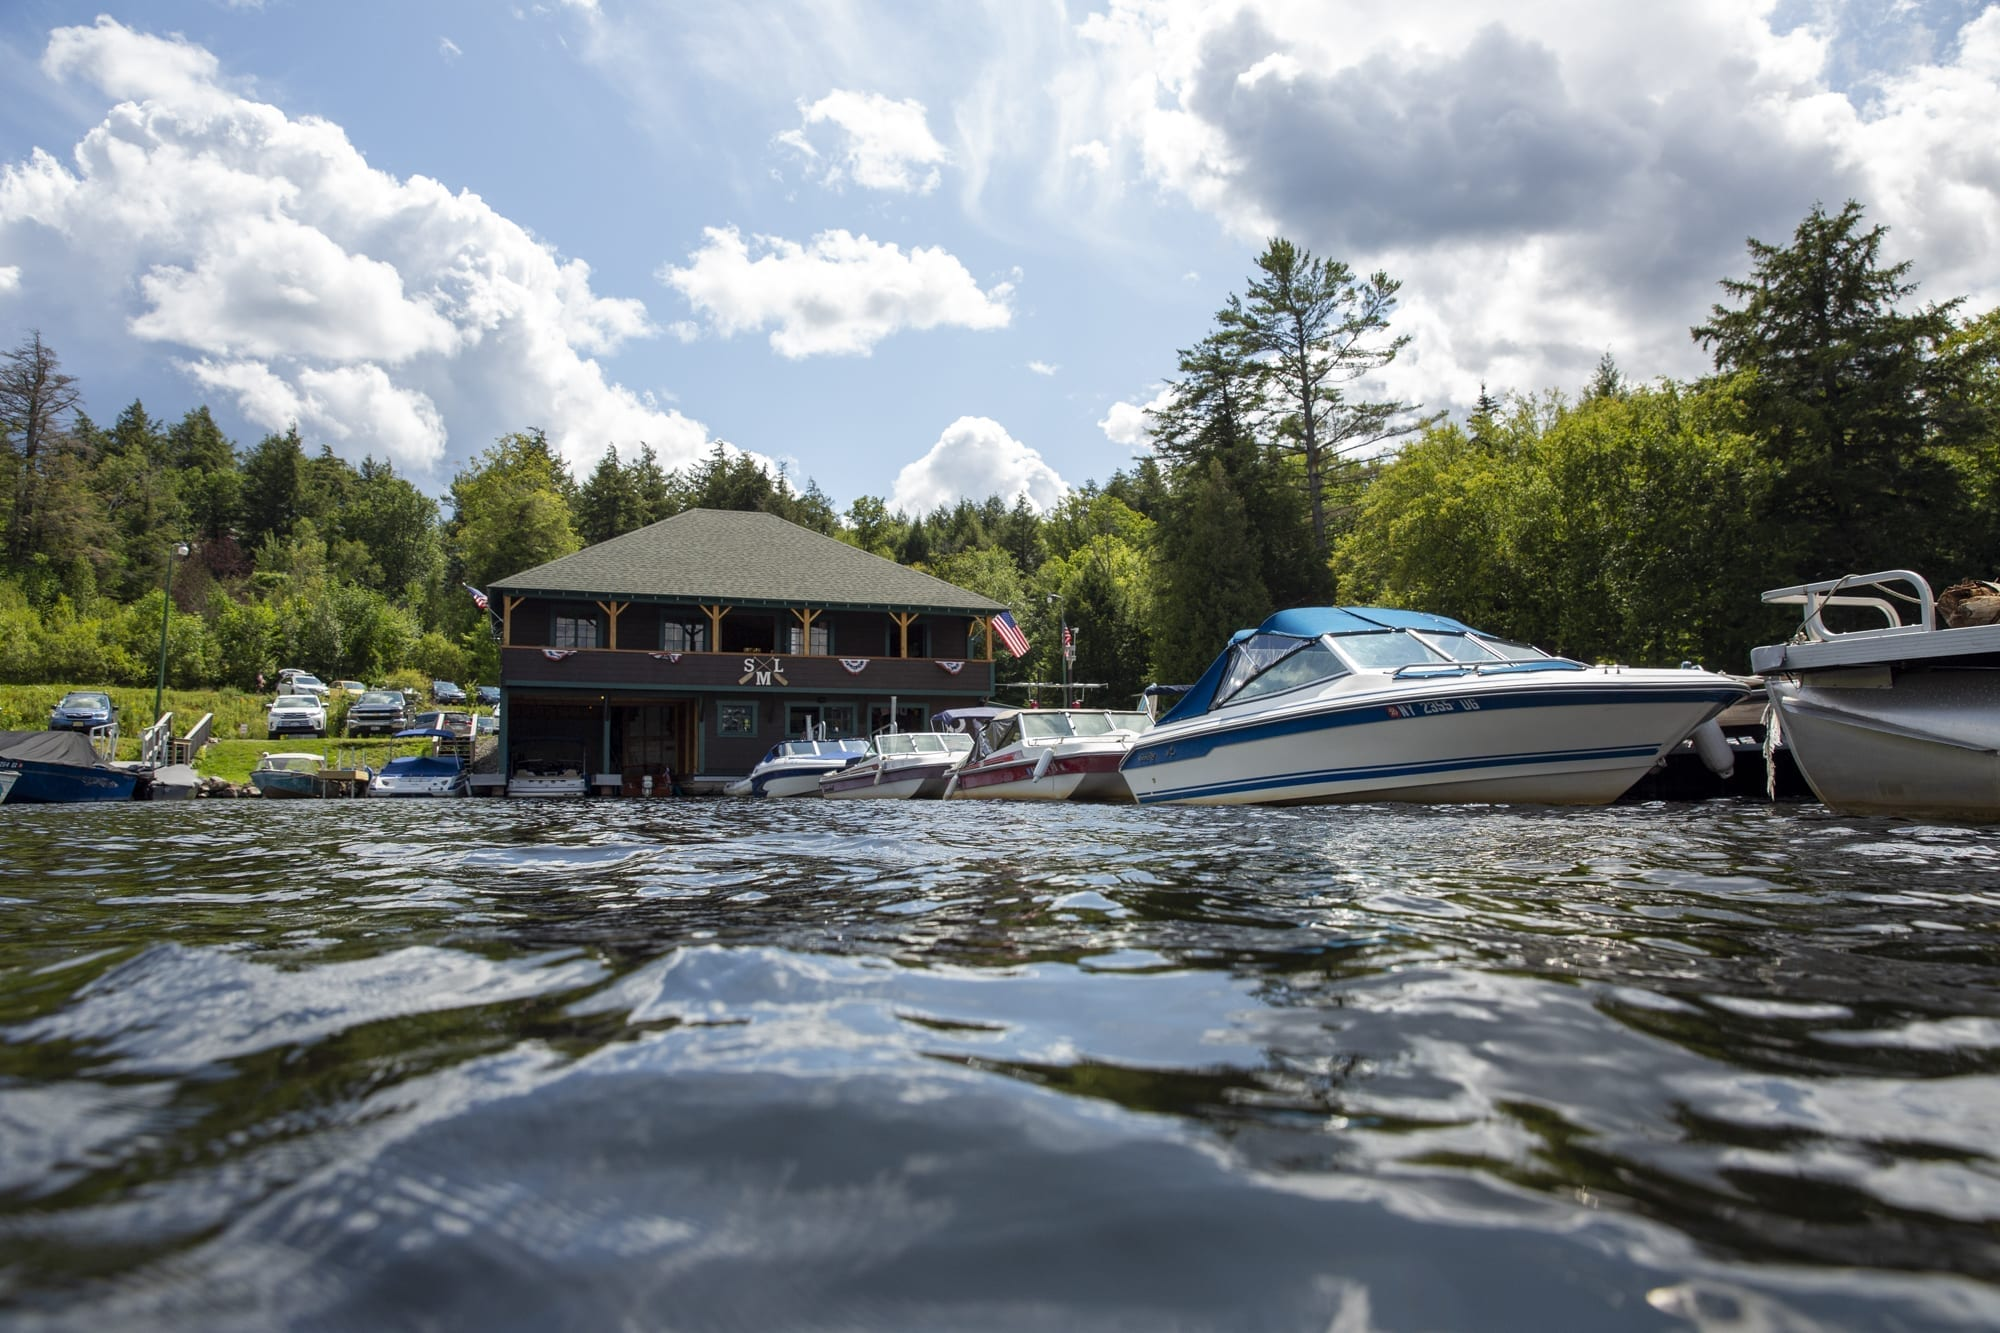 Saranac Lake Marina proposed expansion spurs questions on precedent